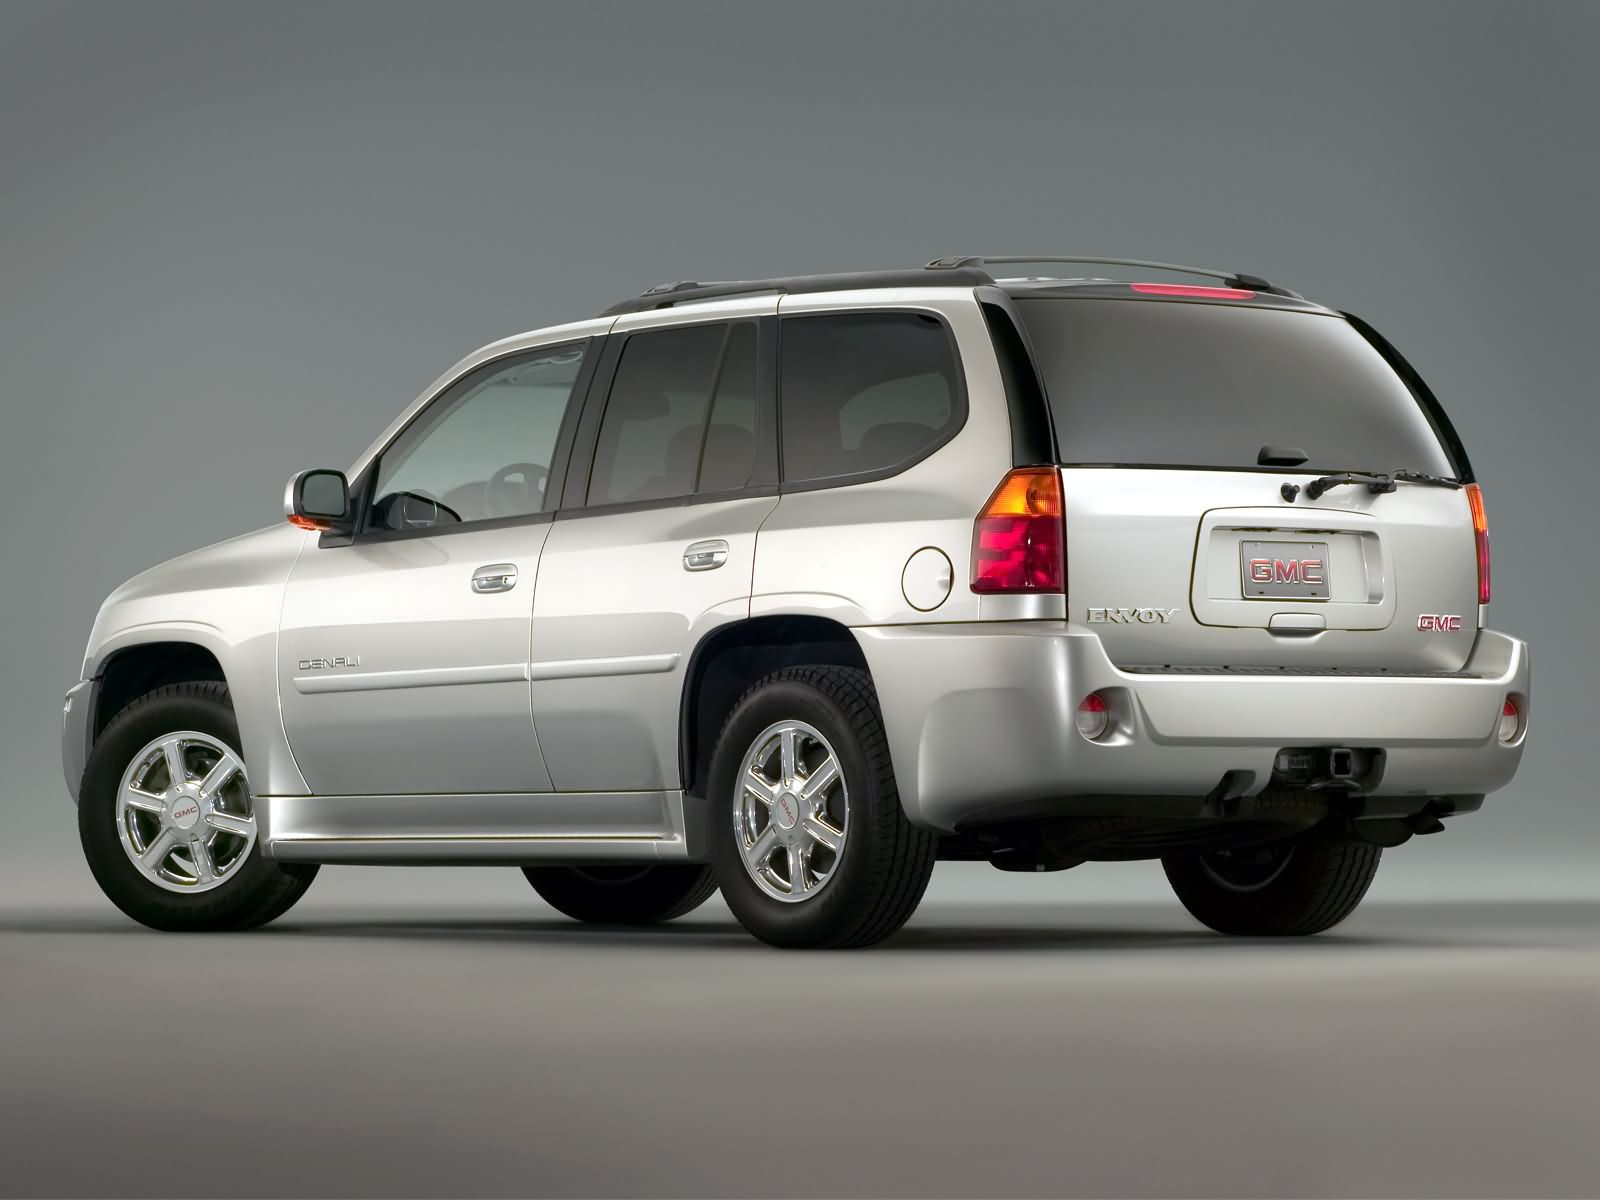 You can vote for this GMC Envoy photo